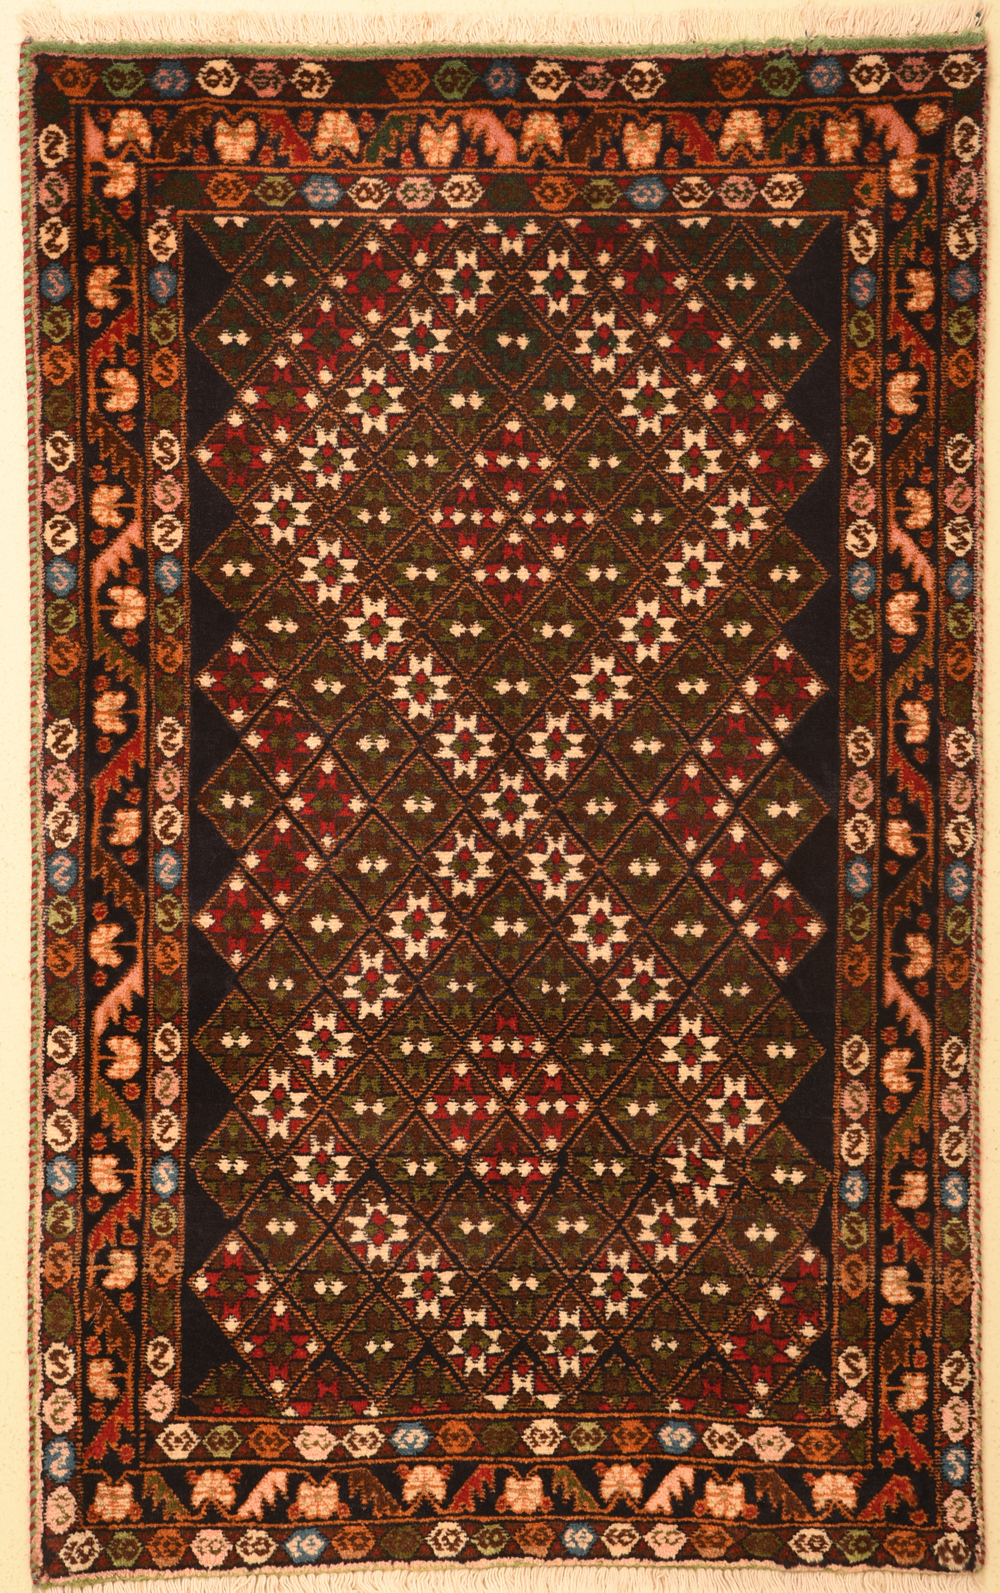 Abadeh 2 39 6 x 4 39 catalina rug for Cheap persian rugs nyc